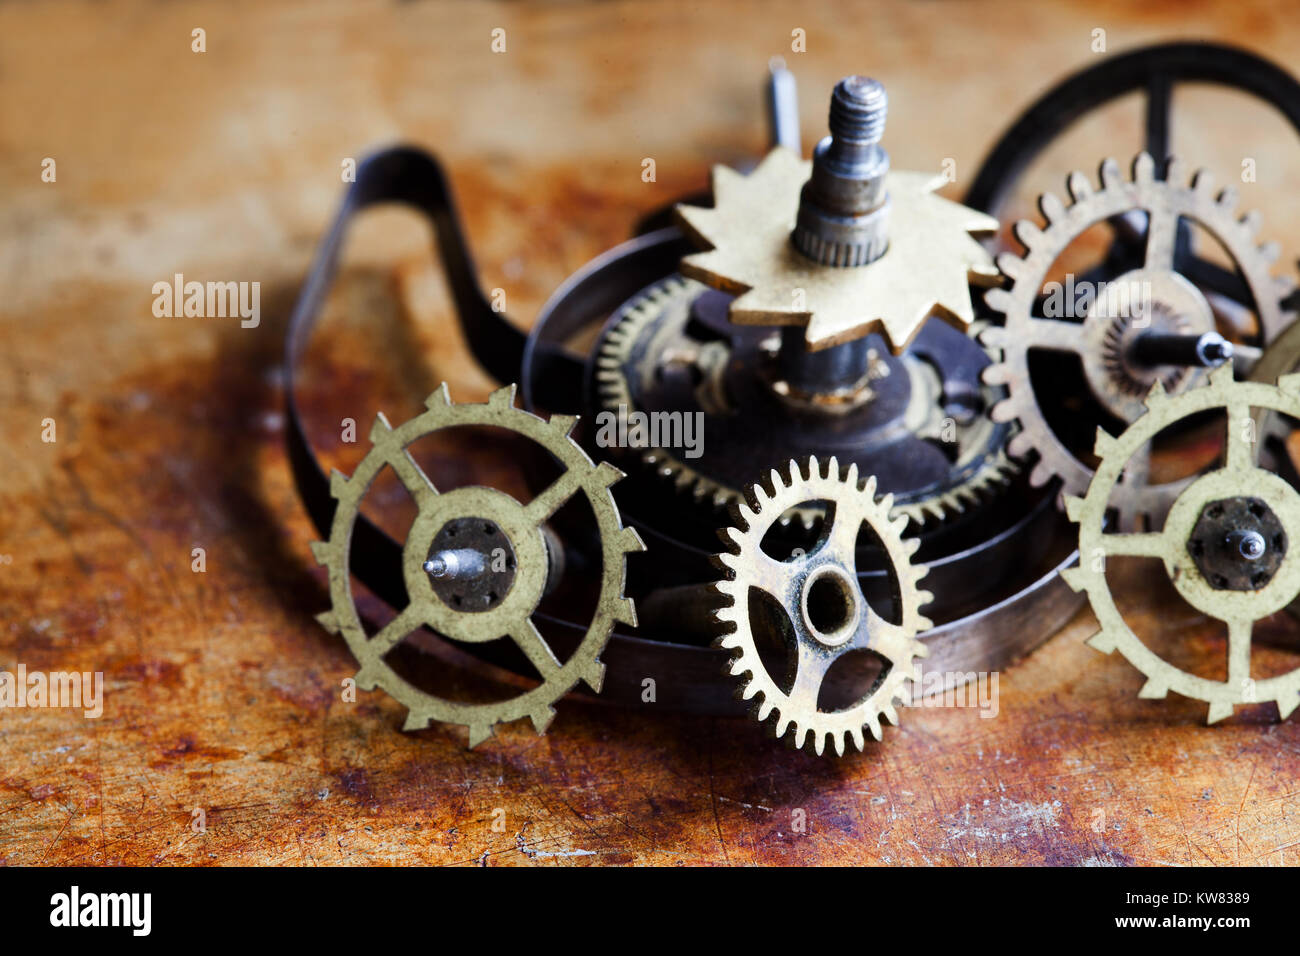 Antique clock mechanism steampunk style cogs gears wheels macro view. Vintage rusty metal surface background, shallow - Stock Image